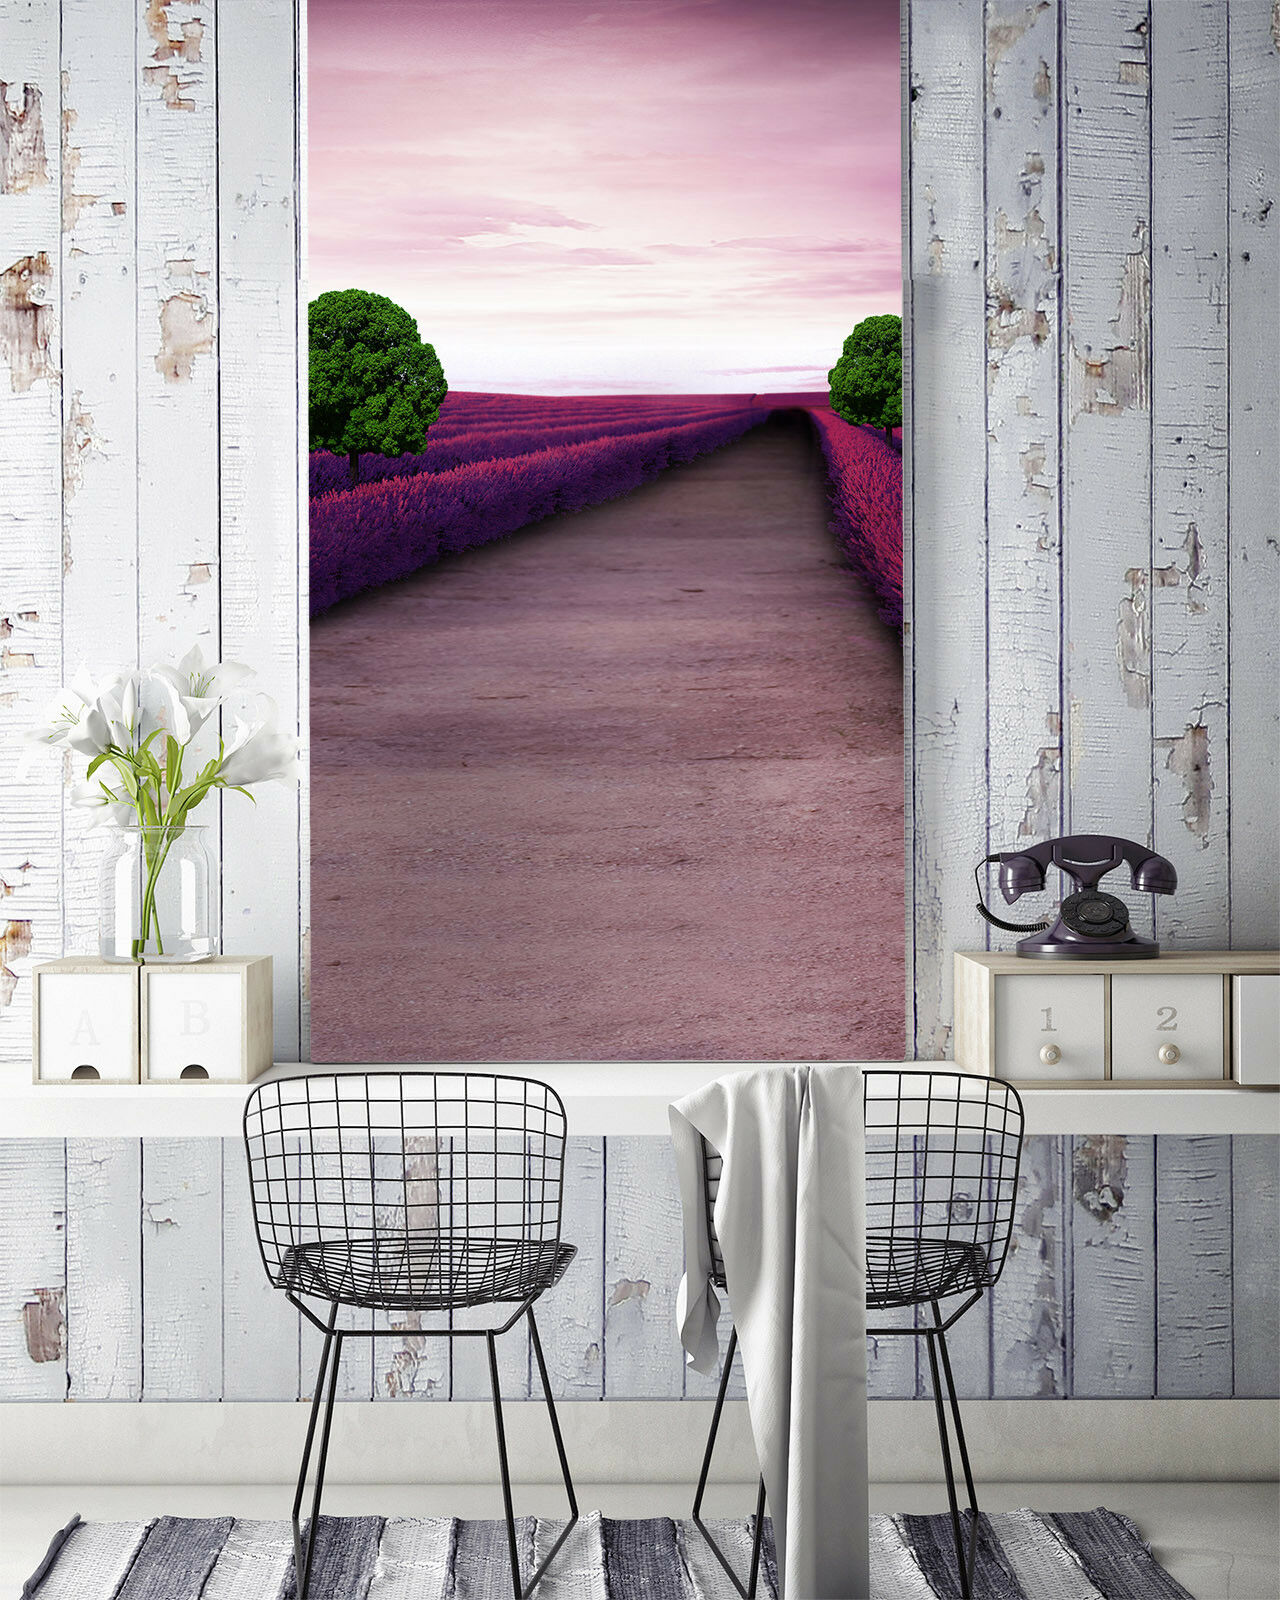 3D Flower Road 4159 Wallpaper Murals Wall Print Wall Mural AJ WALLPAPER UK Carly